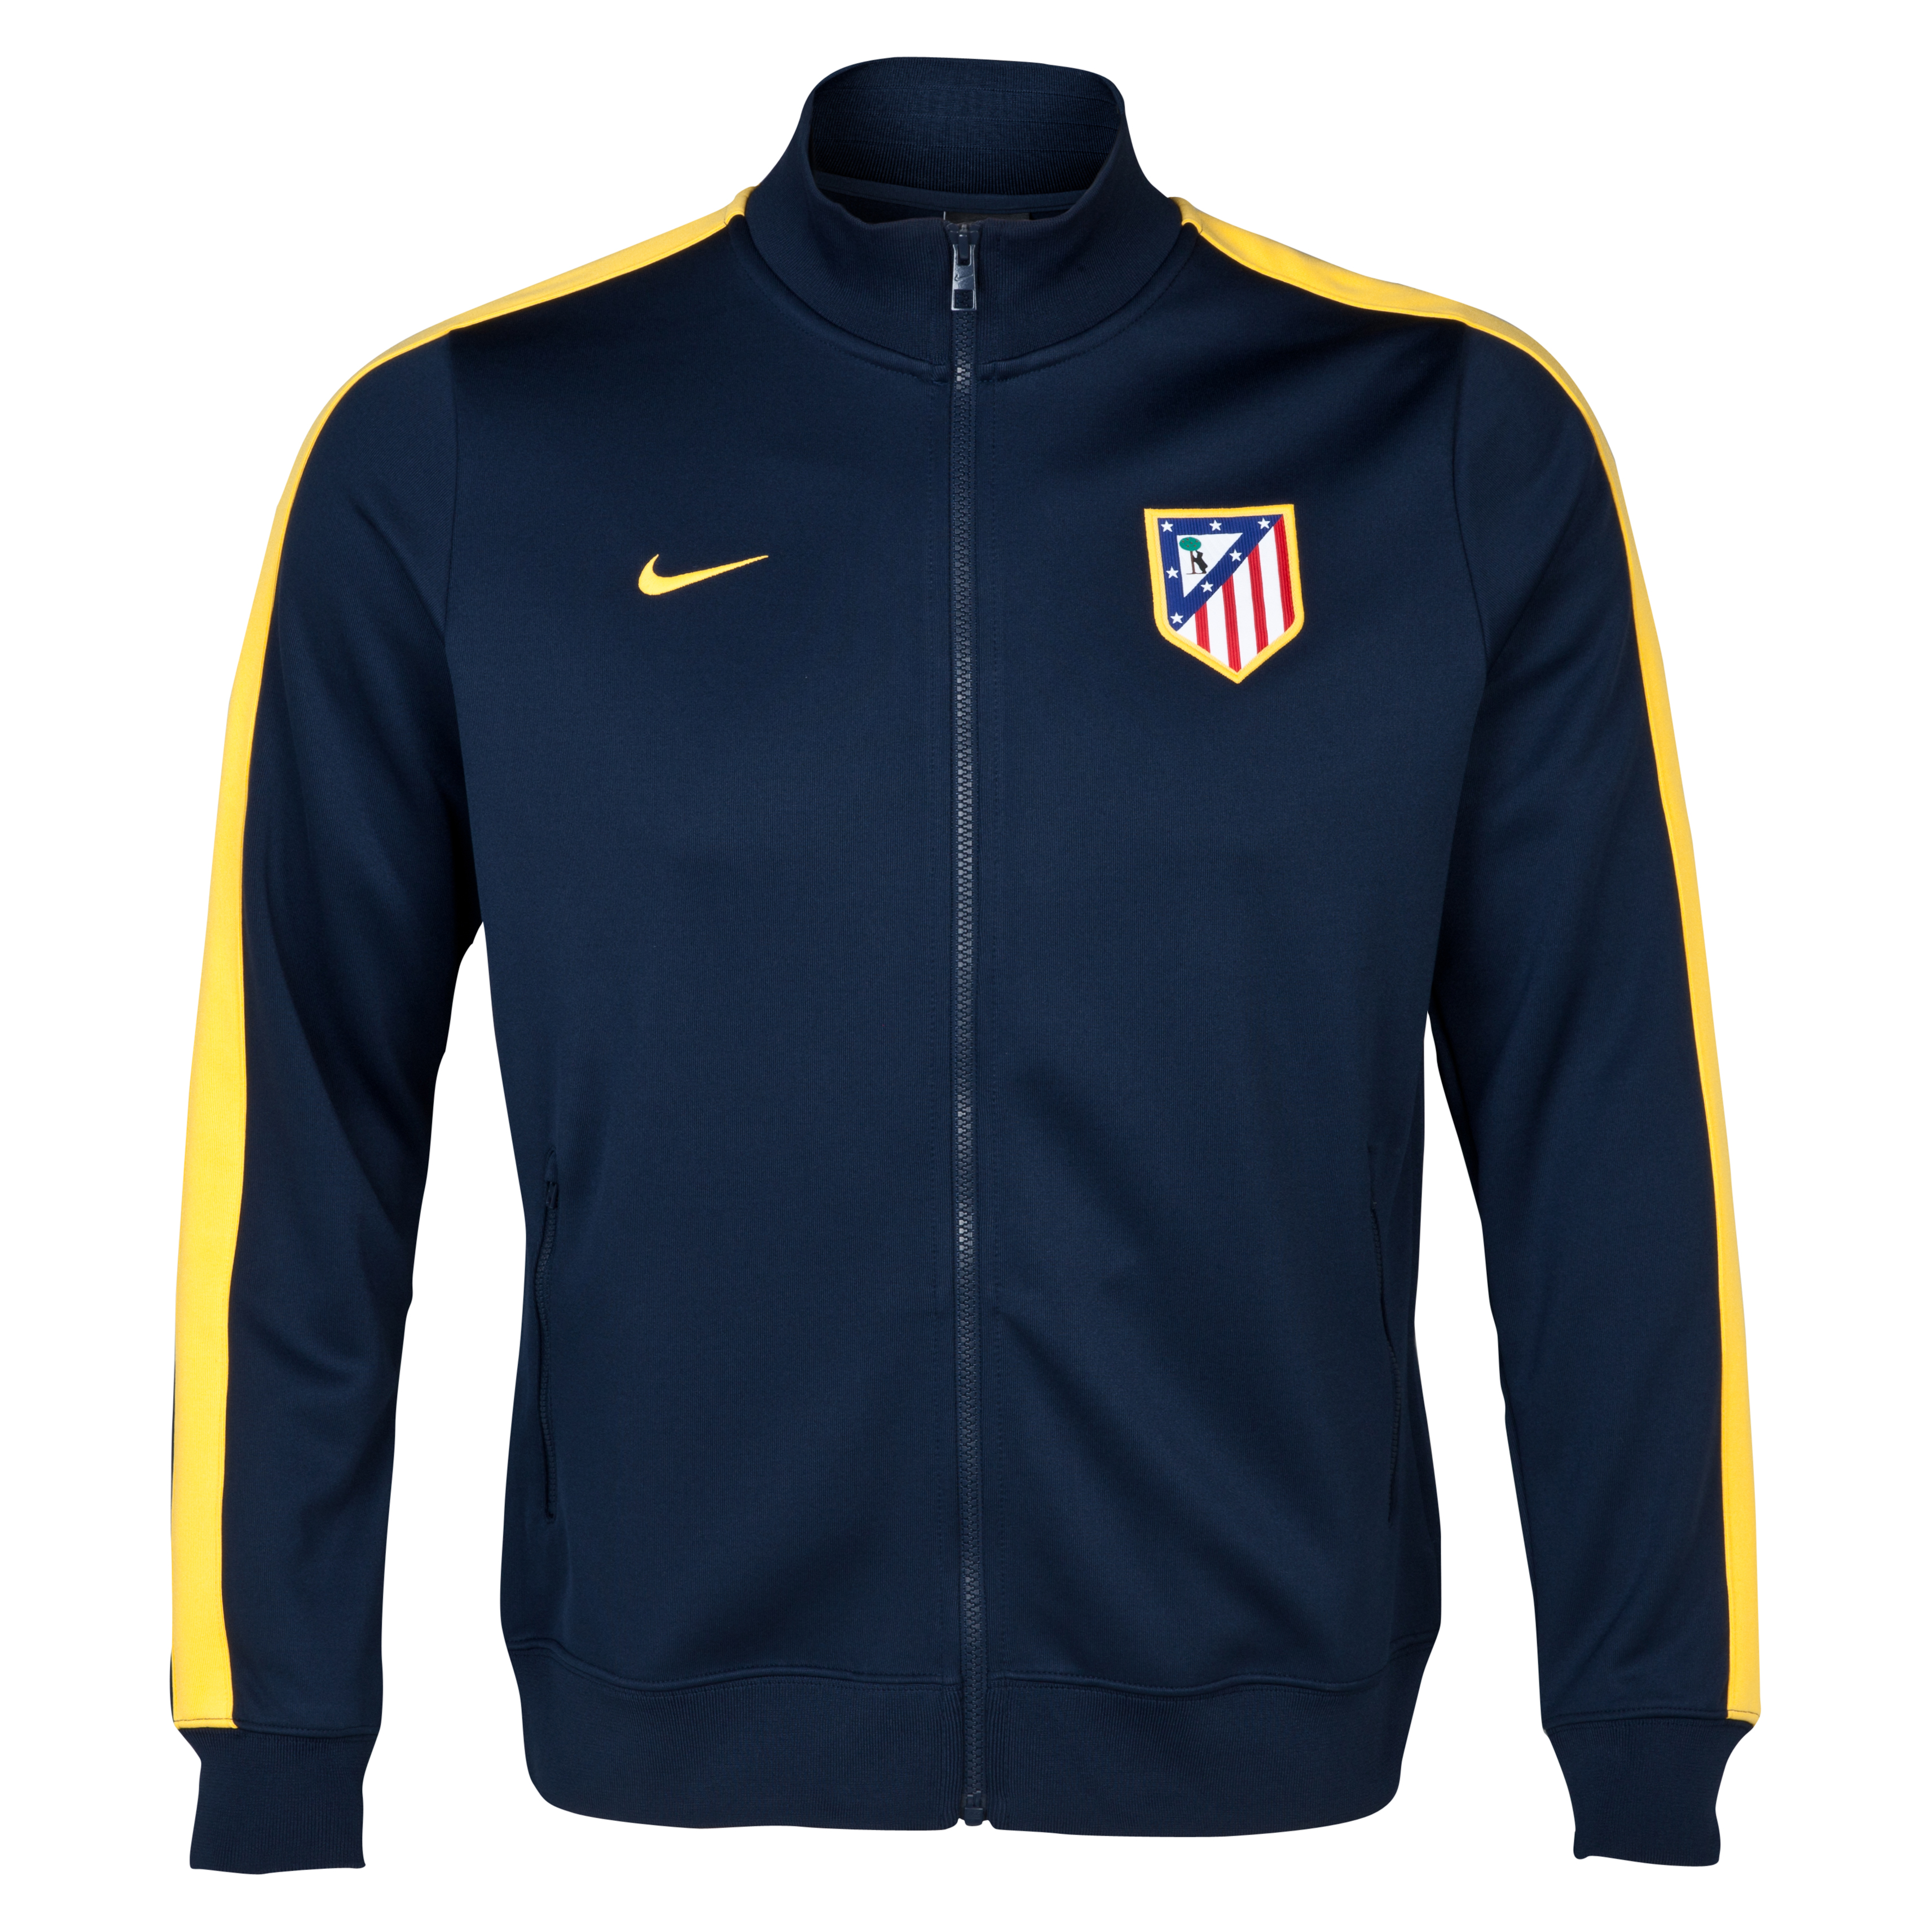 Atletico Madrid Authentic N98 Jacket - Obsidian/Varstiy Maize Black